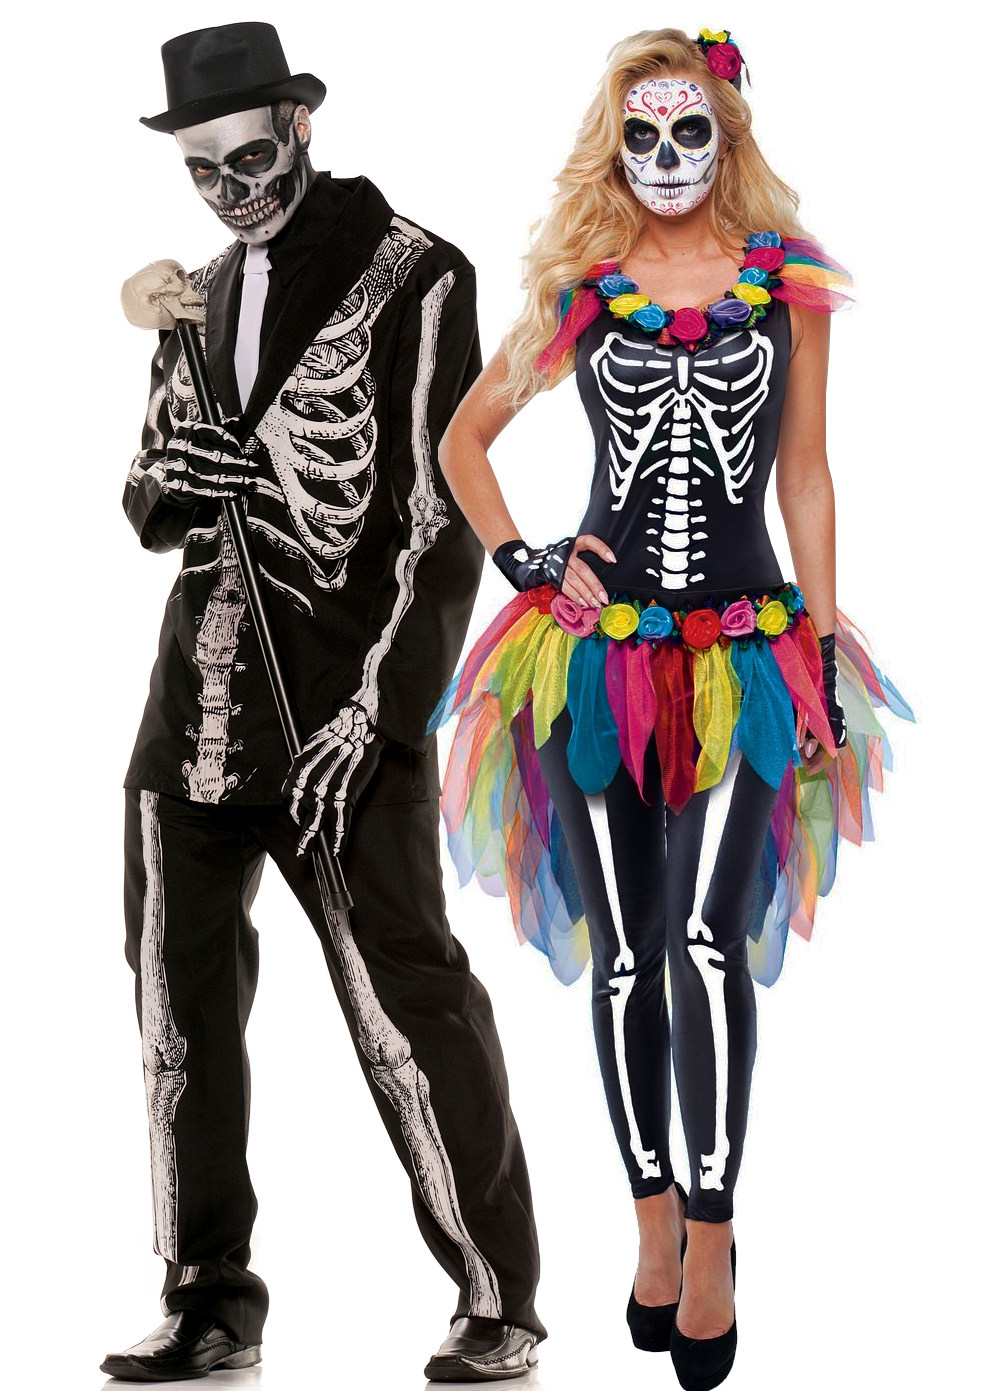 10 Fabulous Day Of The Dead Dress Ideas day of the dead dress up ideas photo dress wallpaper hd aorg 2020